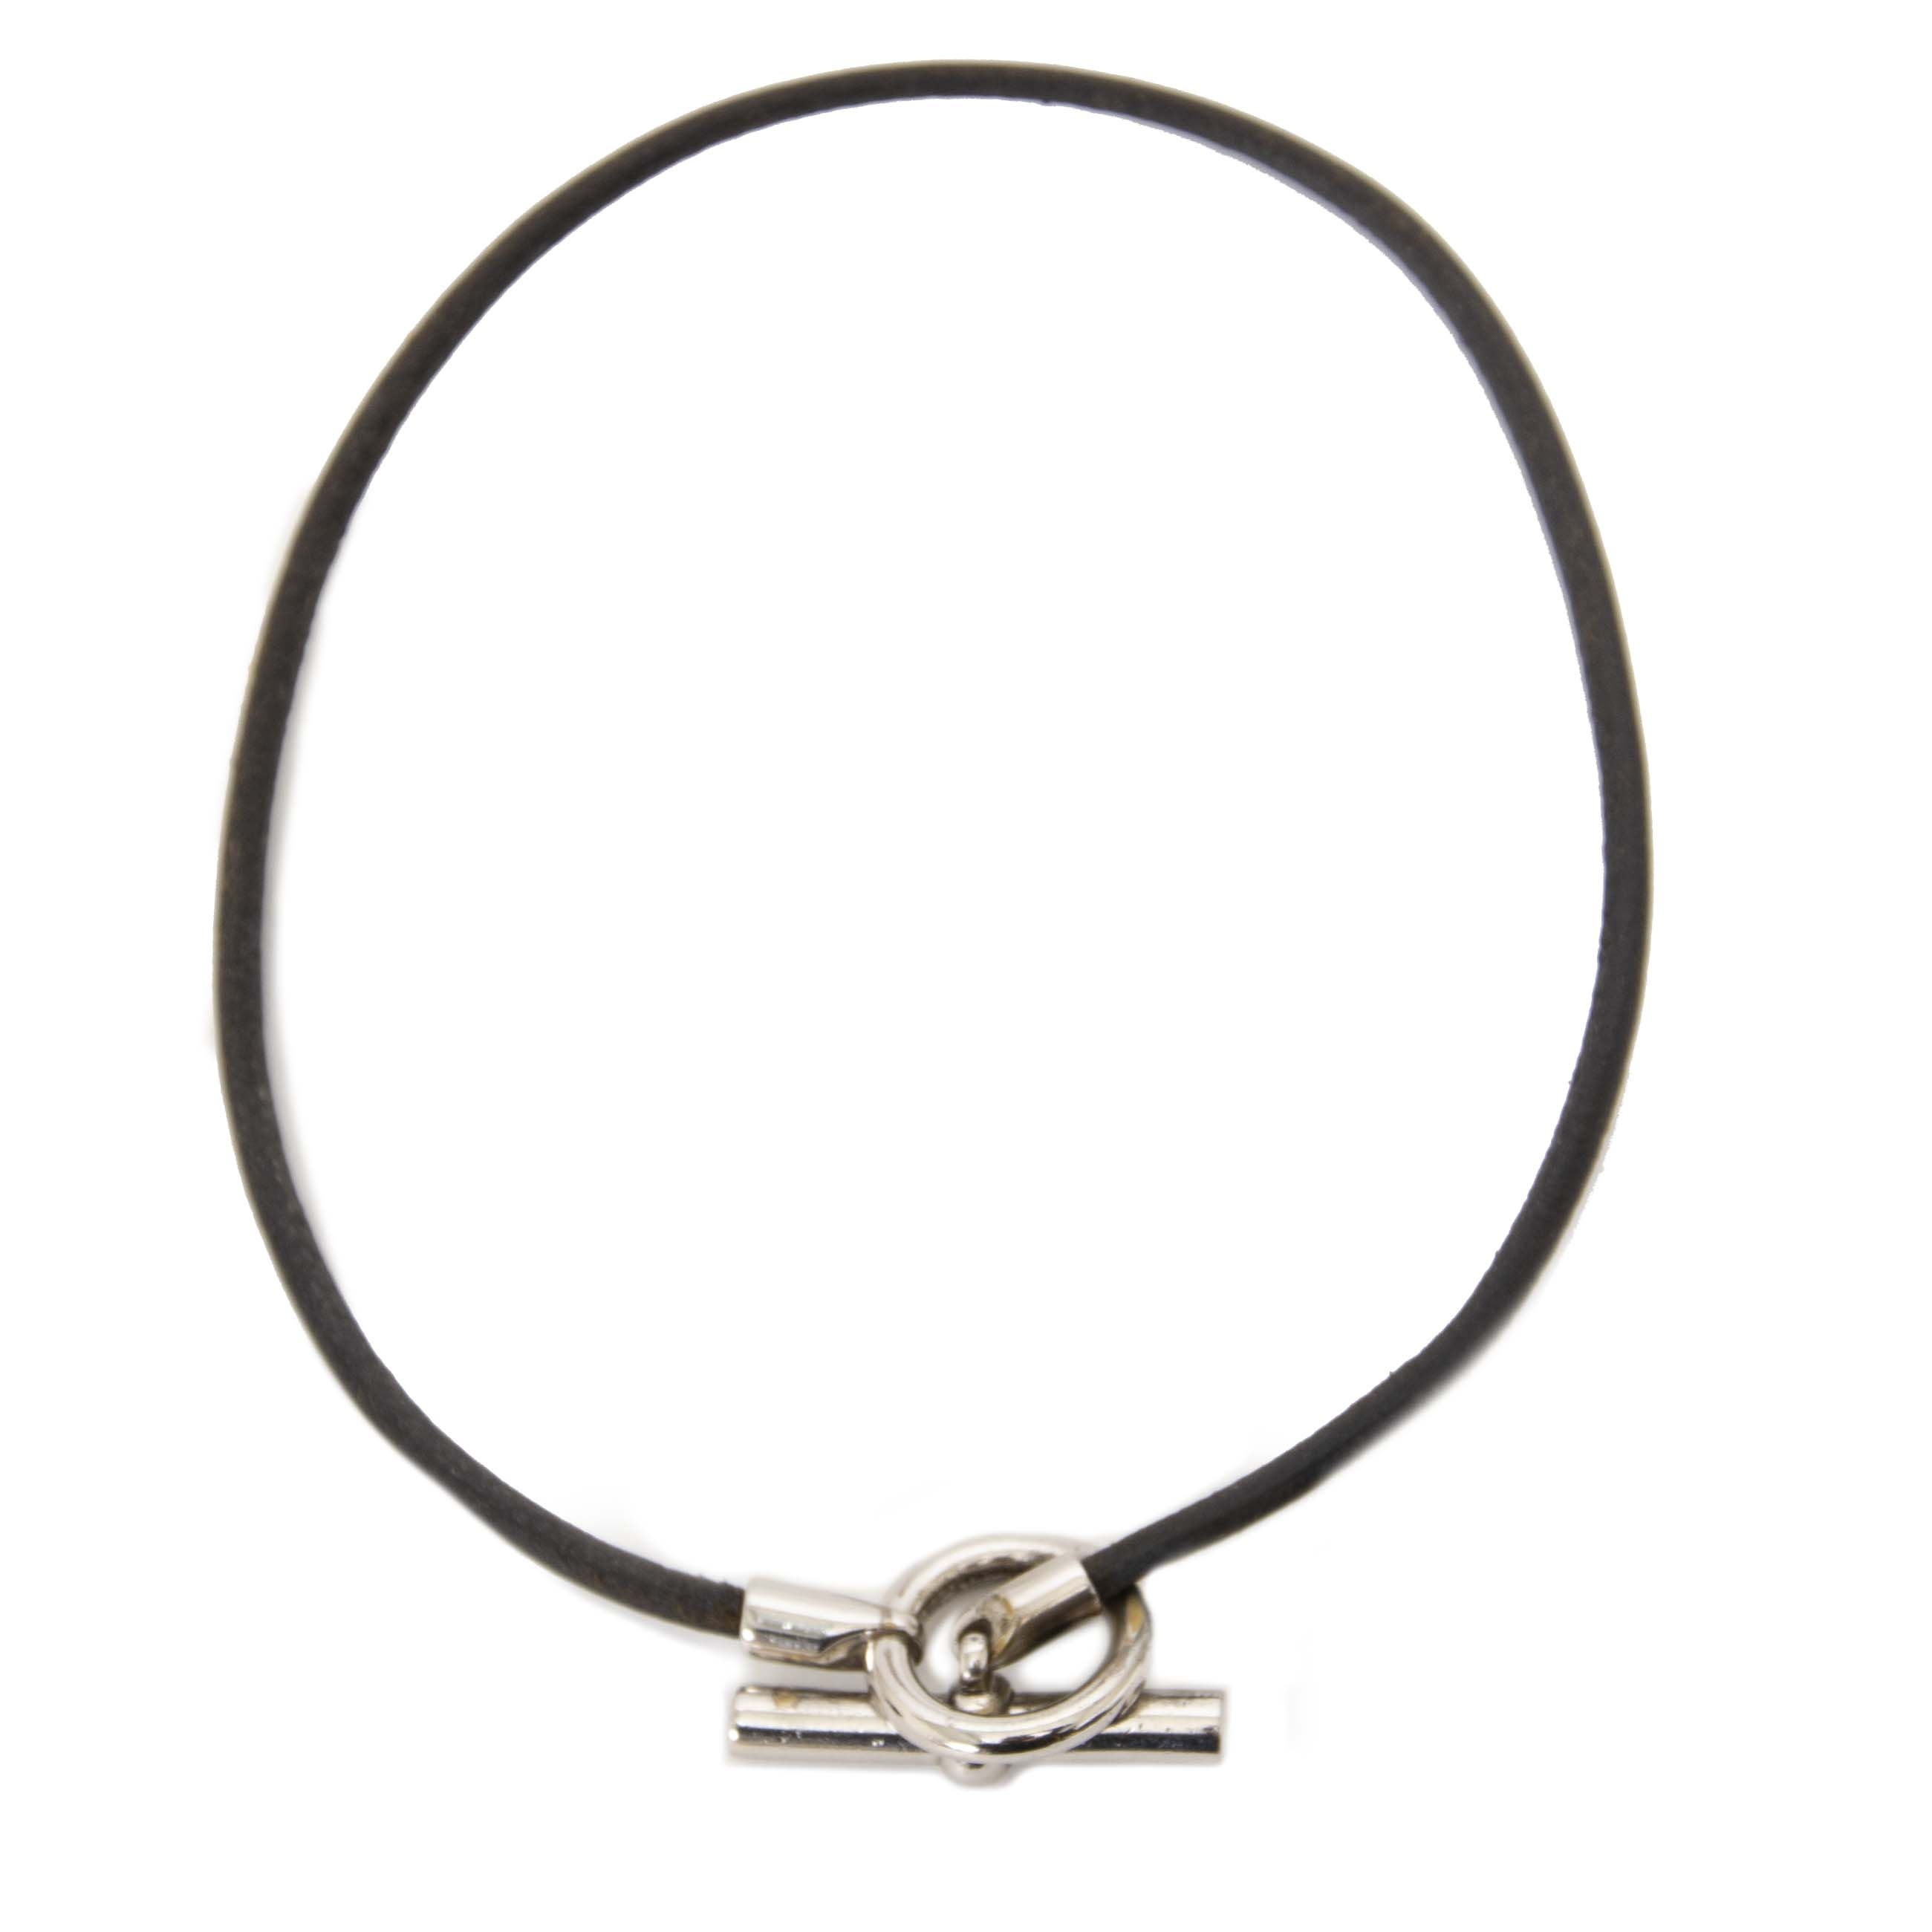 We buy and sell your authentic designer Hermès Glenan Leather Cord Necklace